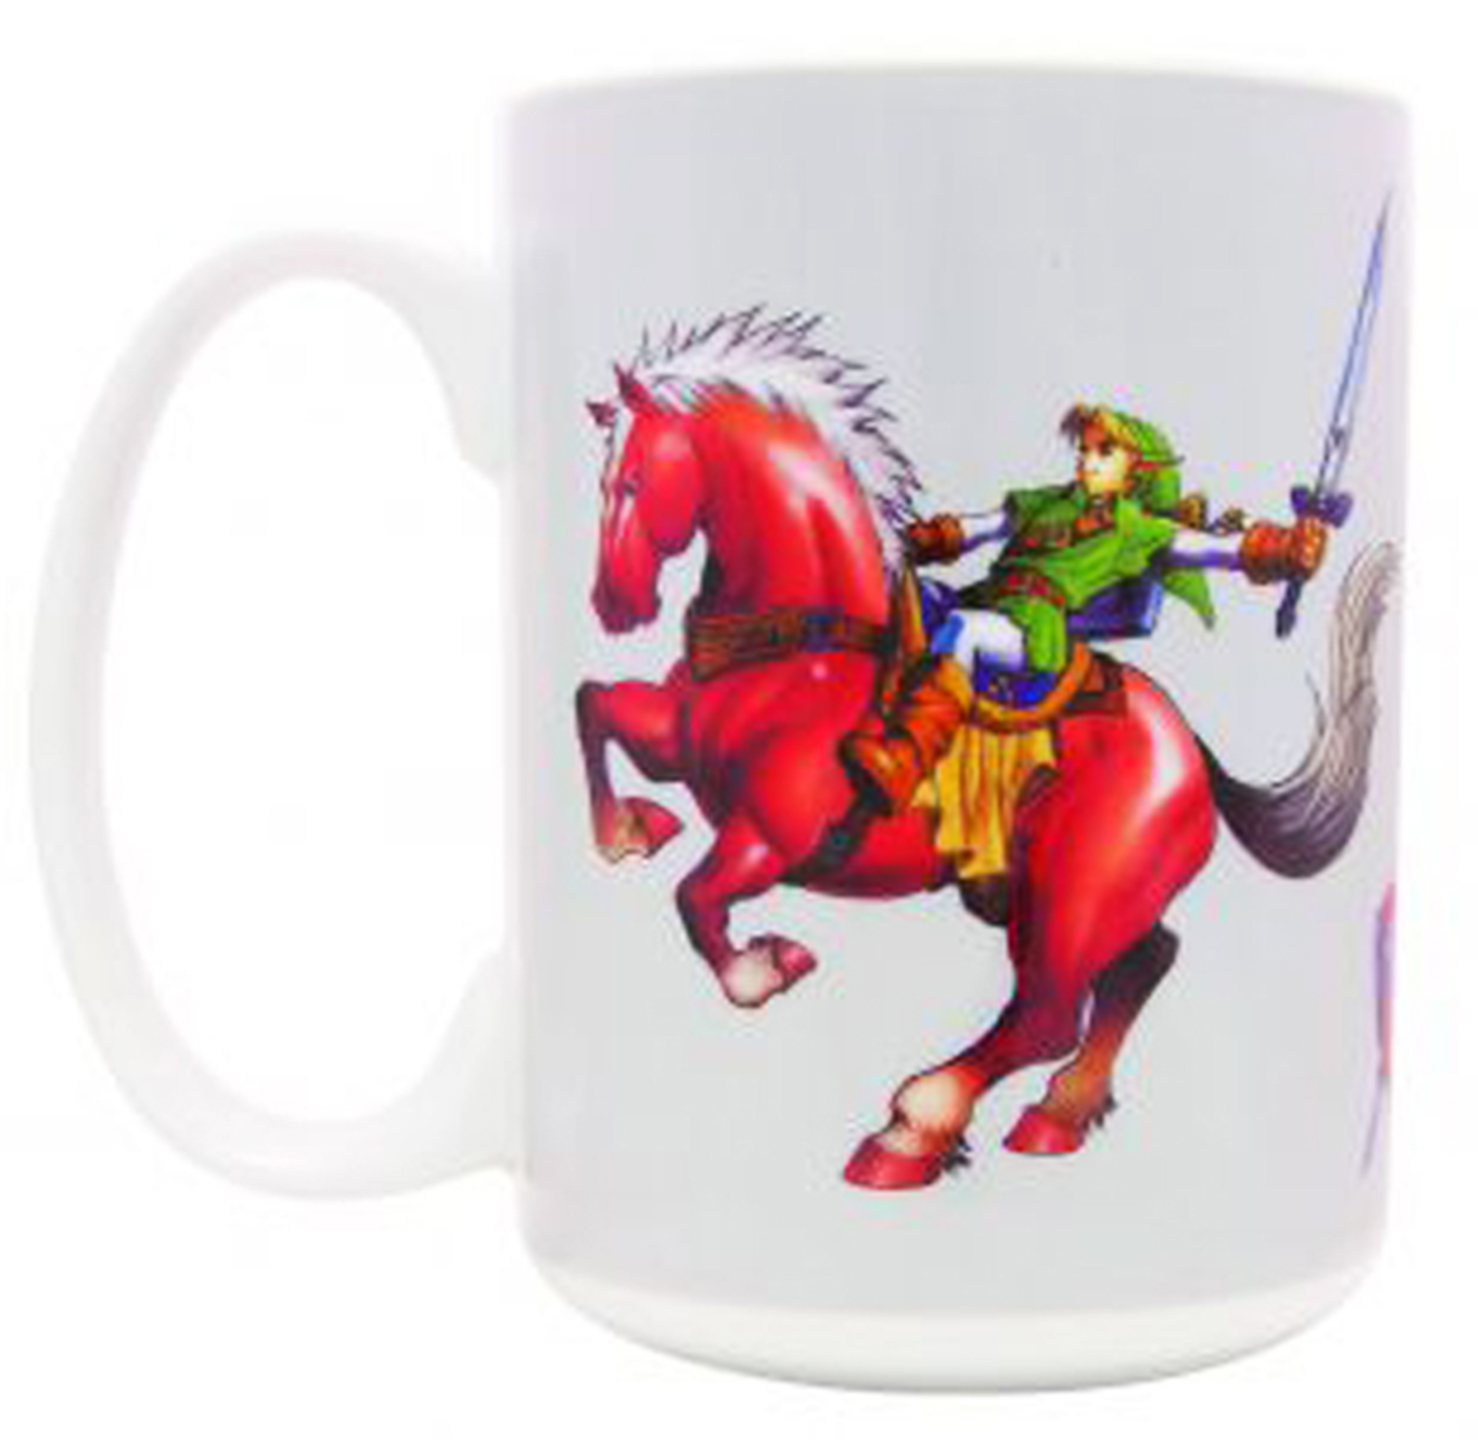 Legend of Zelda Ocarina of Time: Link on Epona Mug